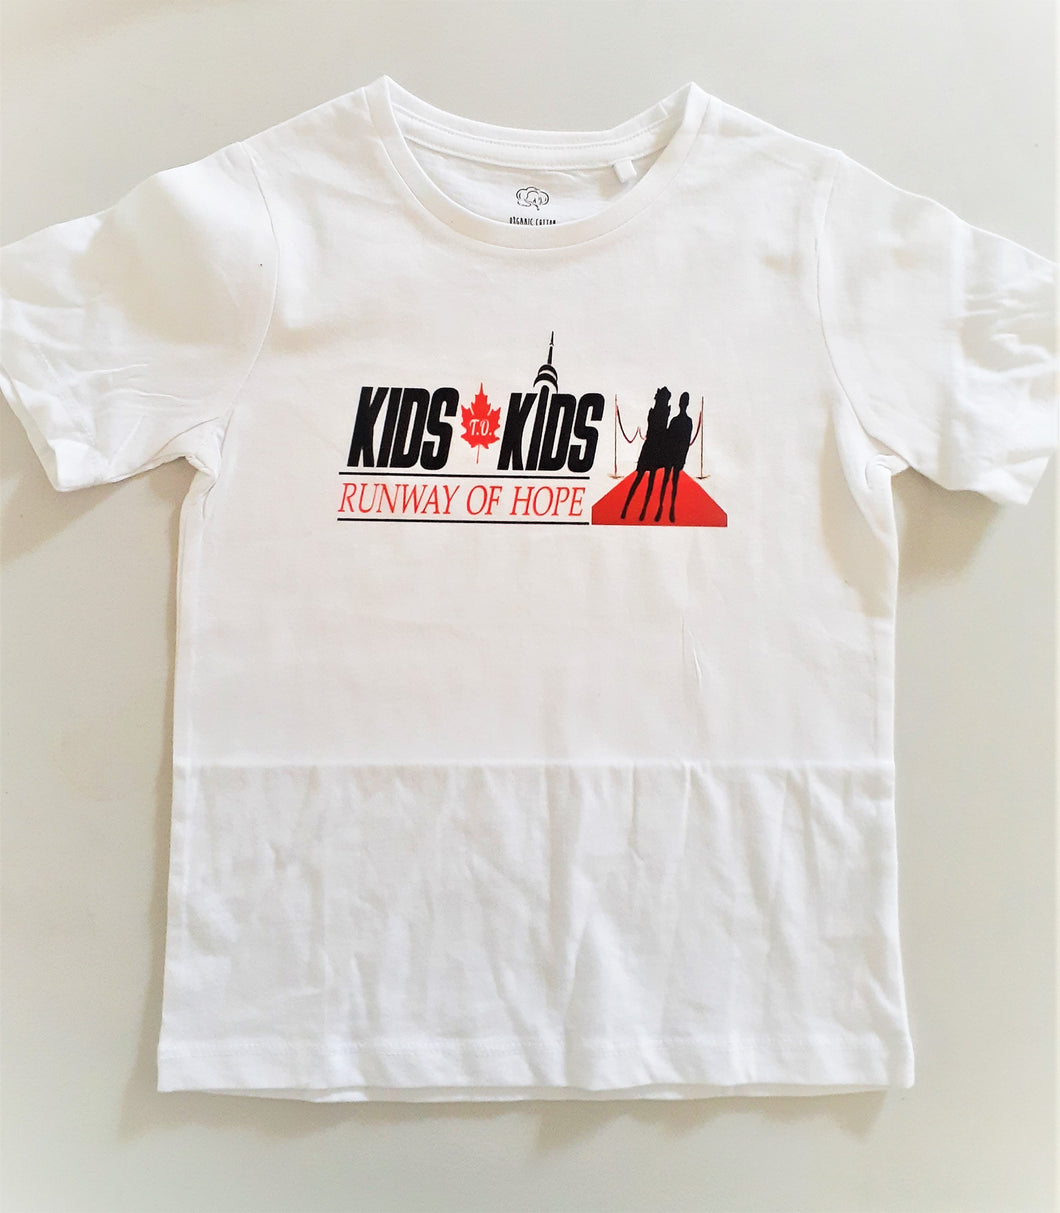 Kids T.O Kids Runway of Hope - Official 2019 Logo Tee